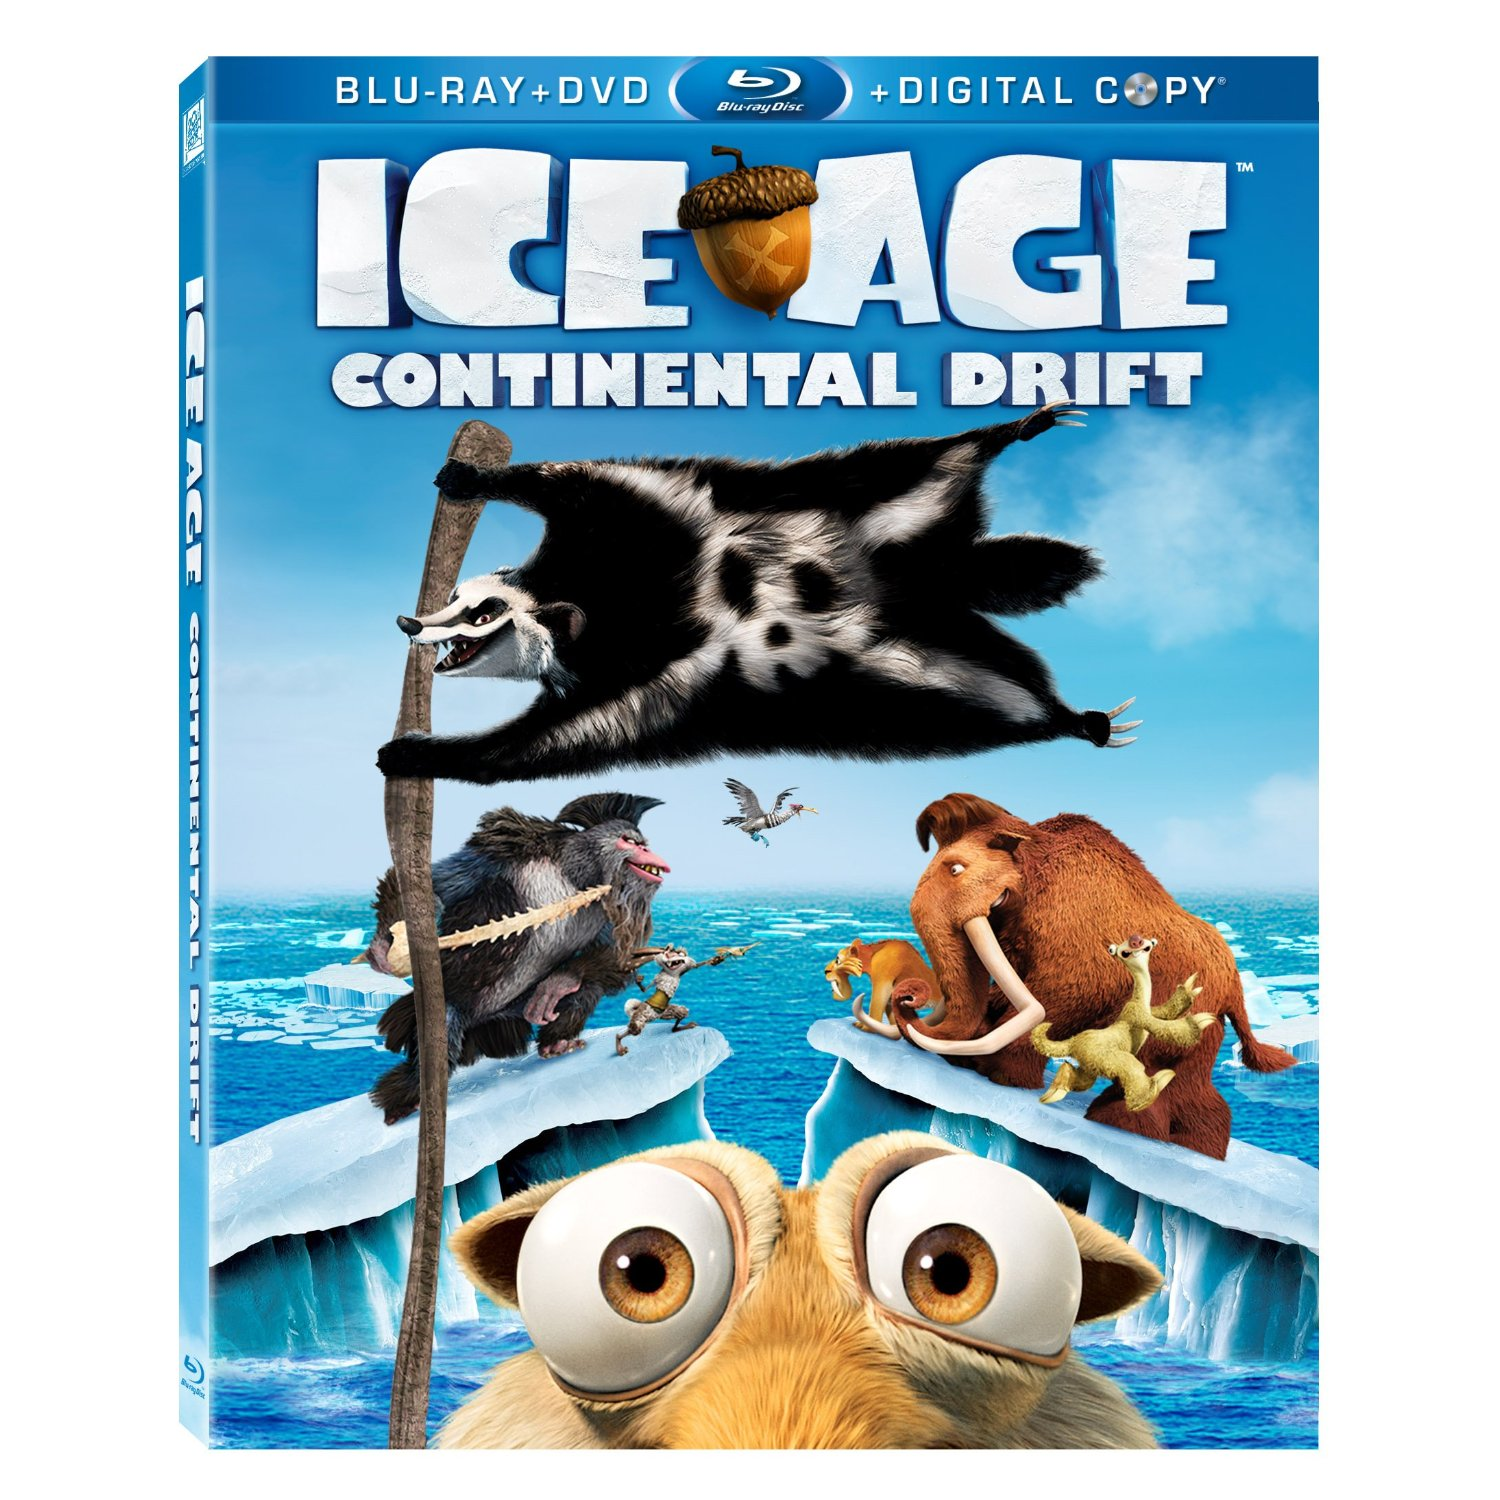 ice age: continental drift now available on blu-ray™ 3d, blu-ray